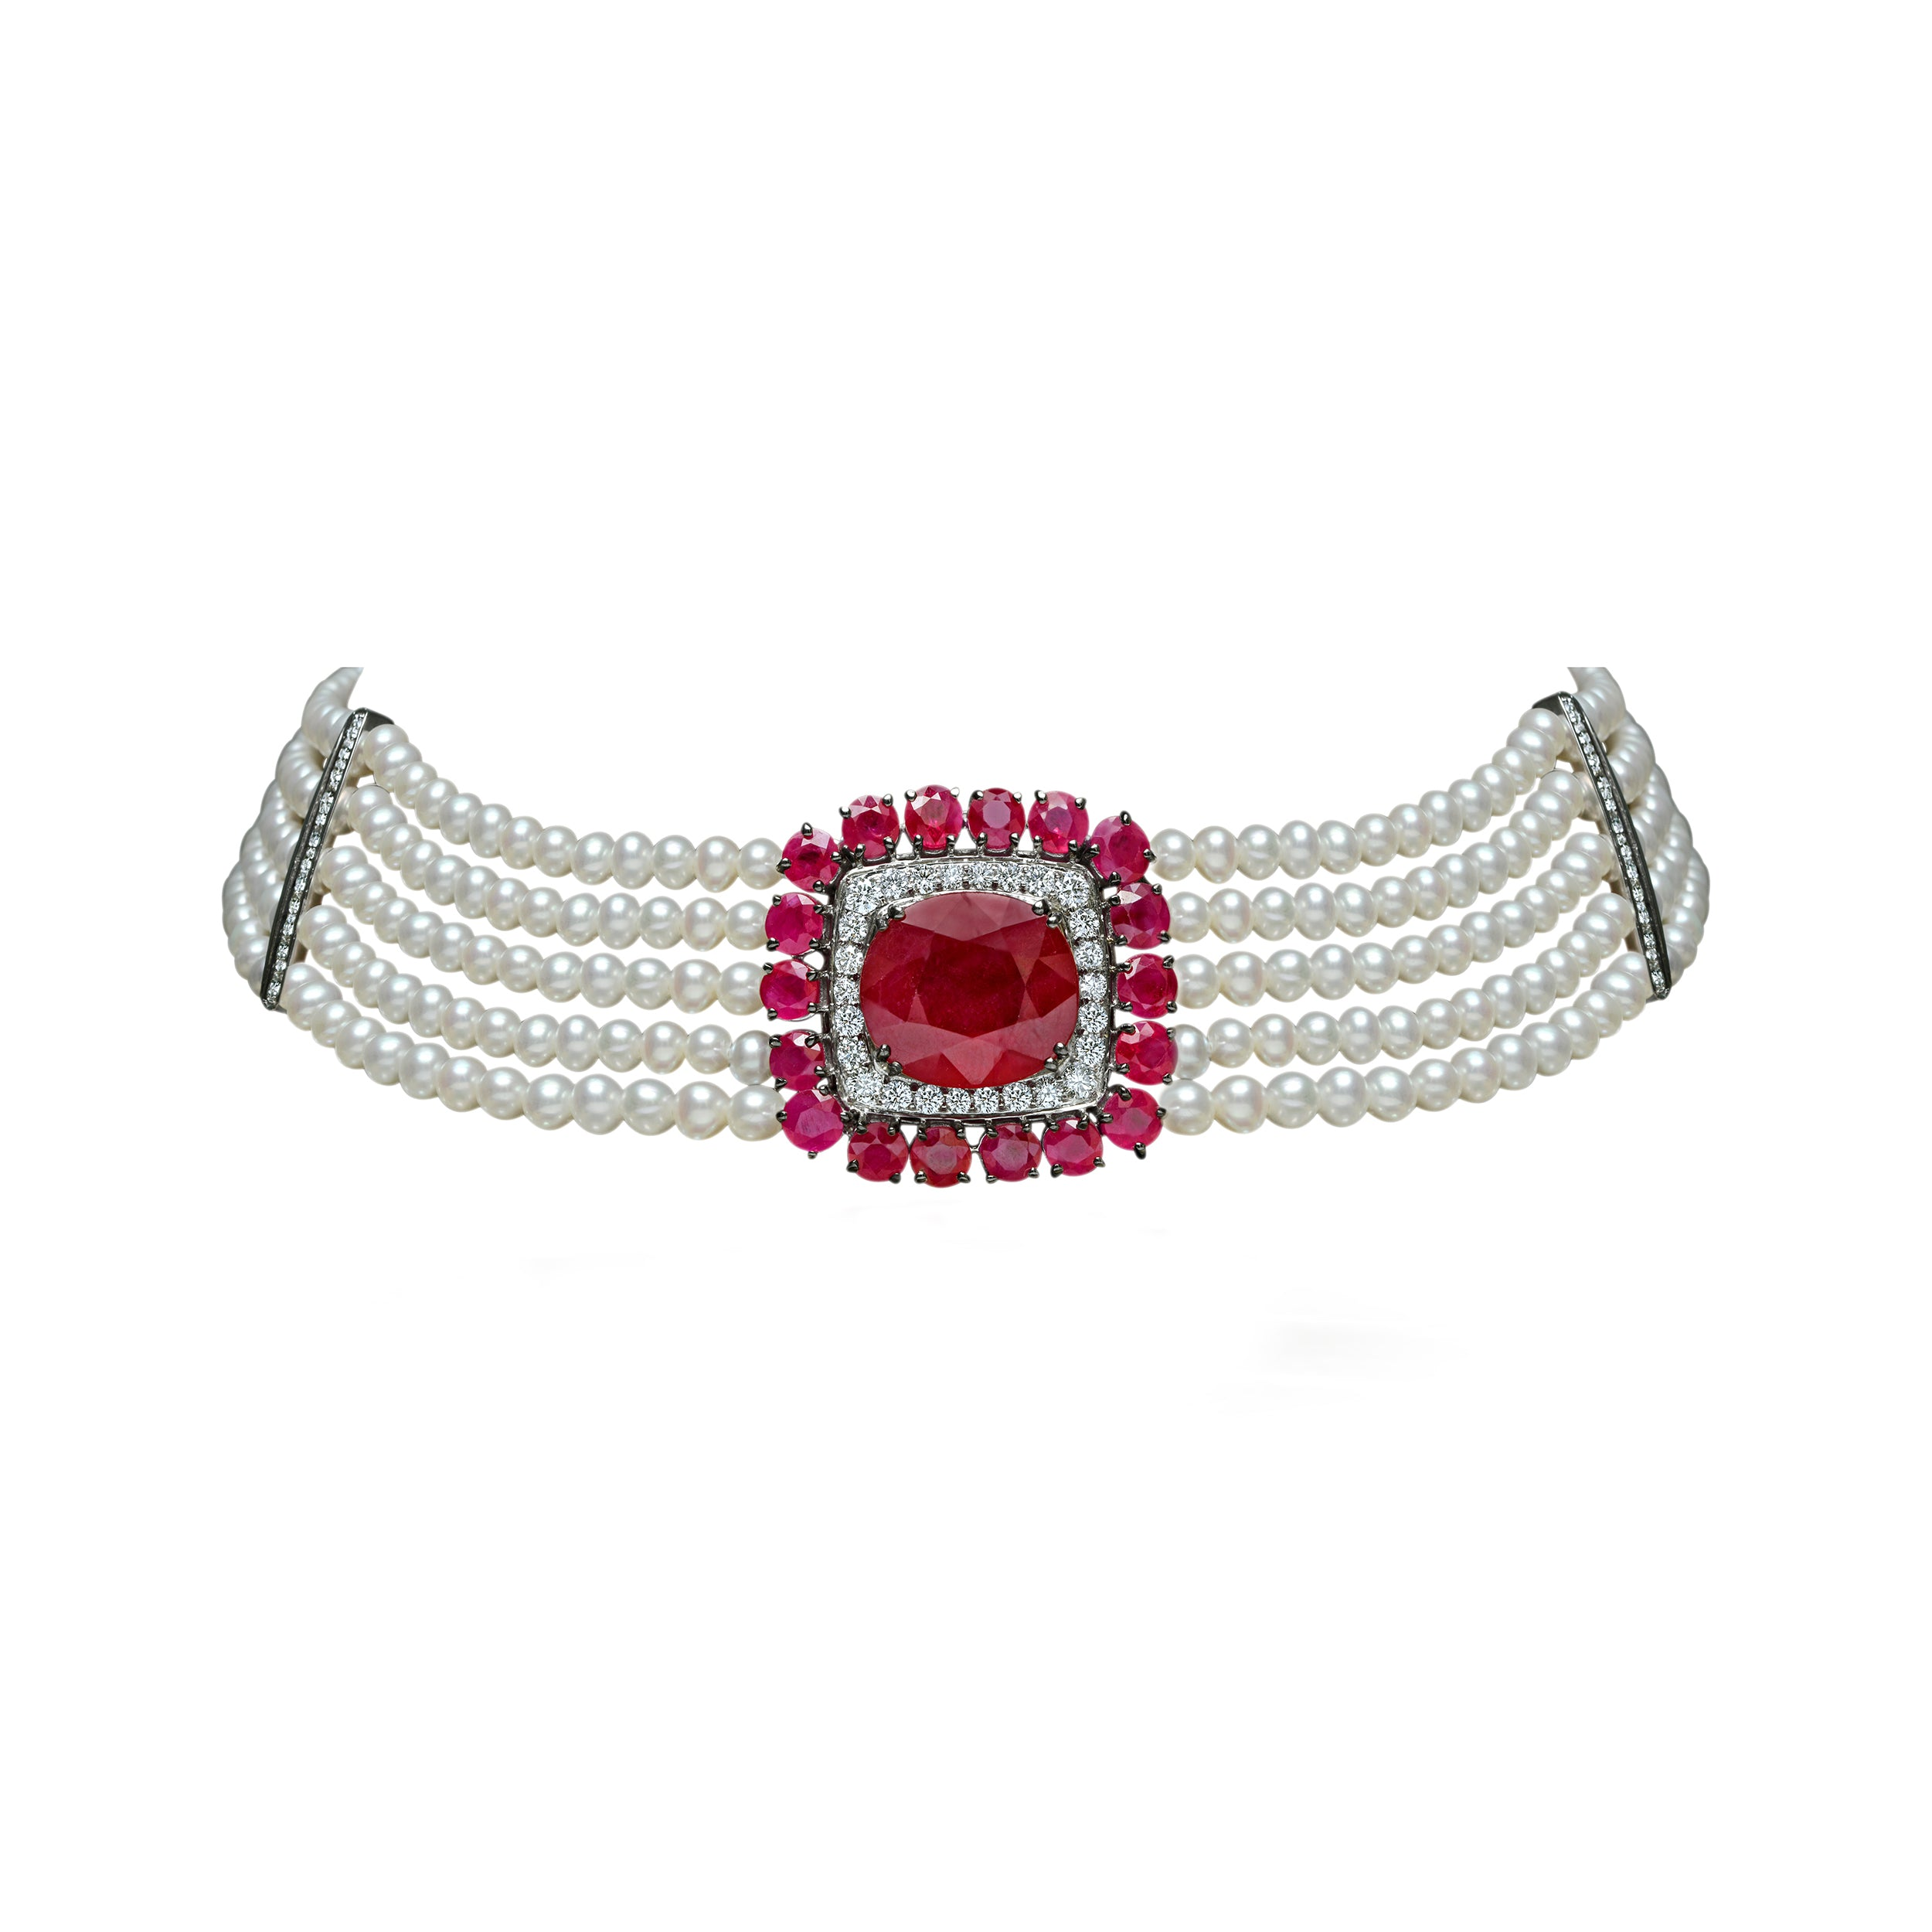 Ruby and Pearl Choker